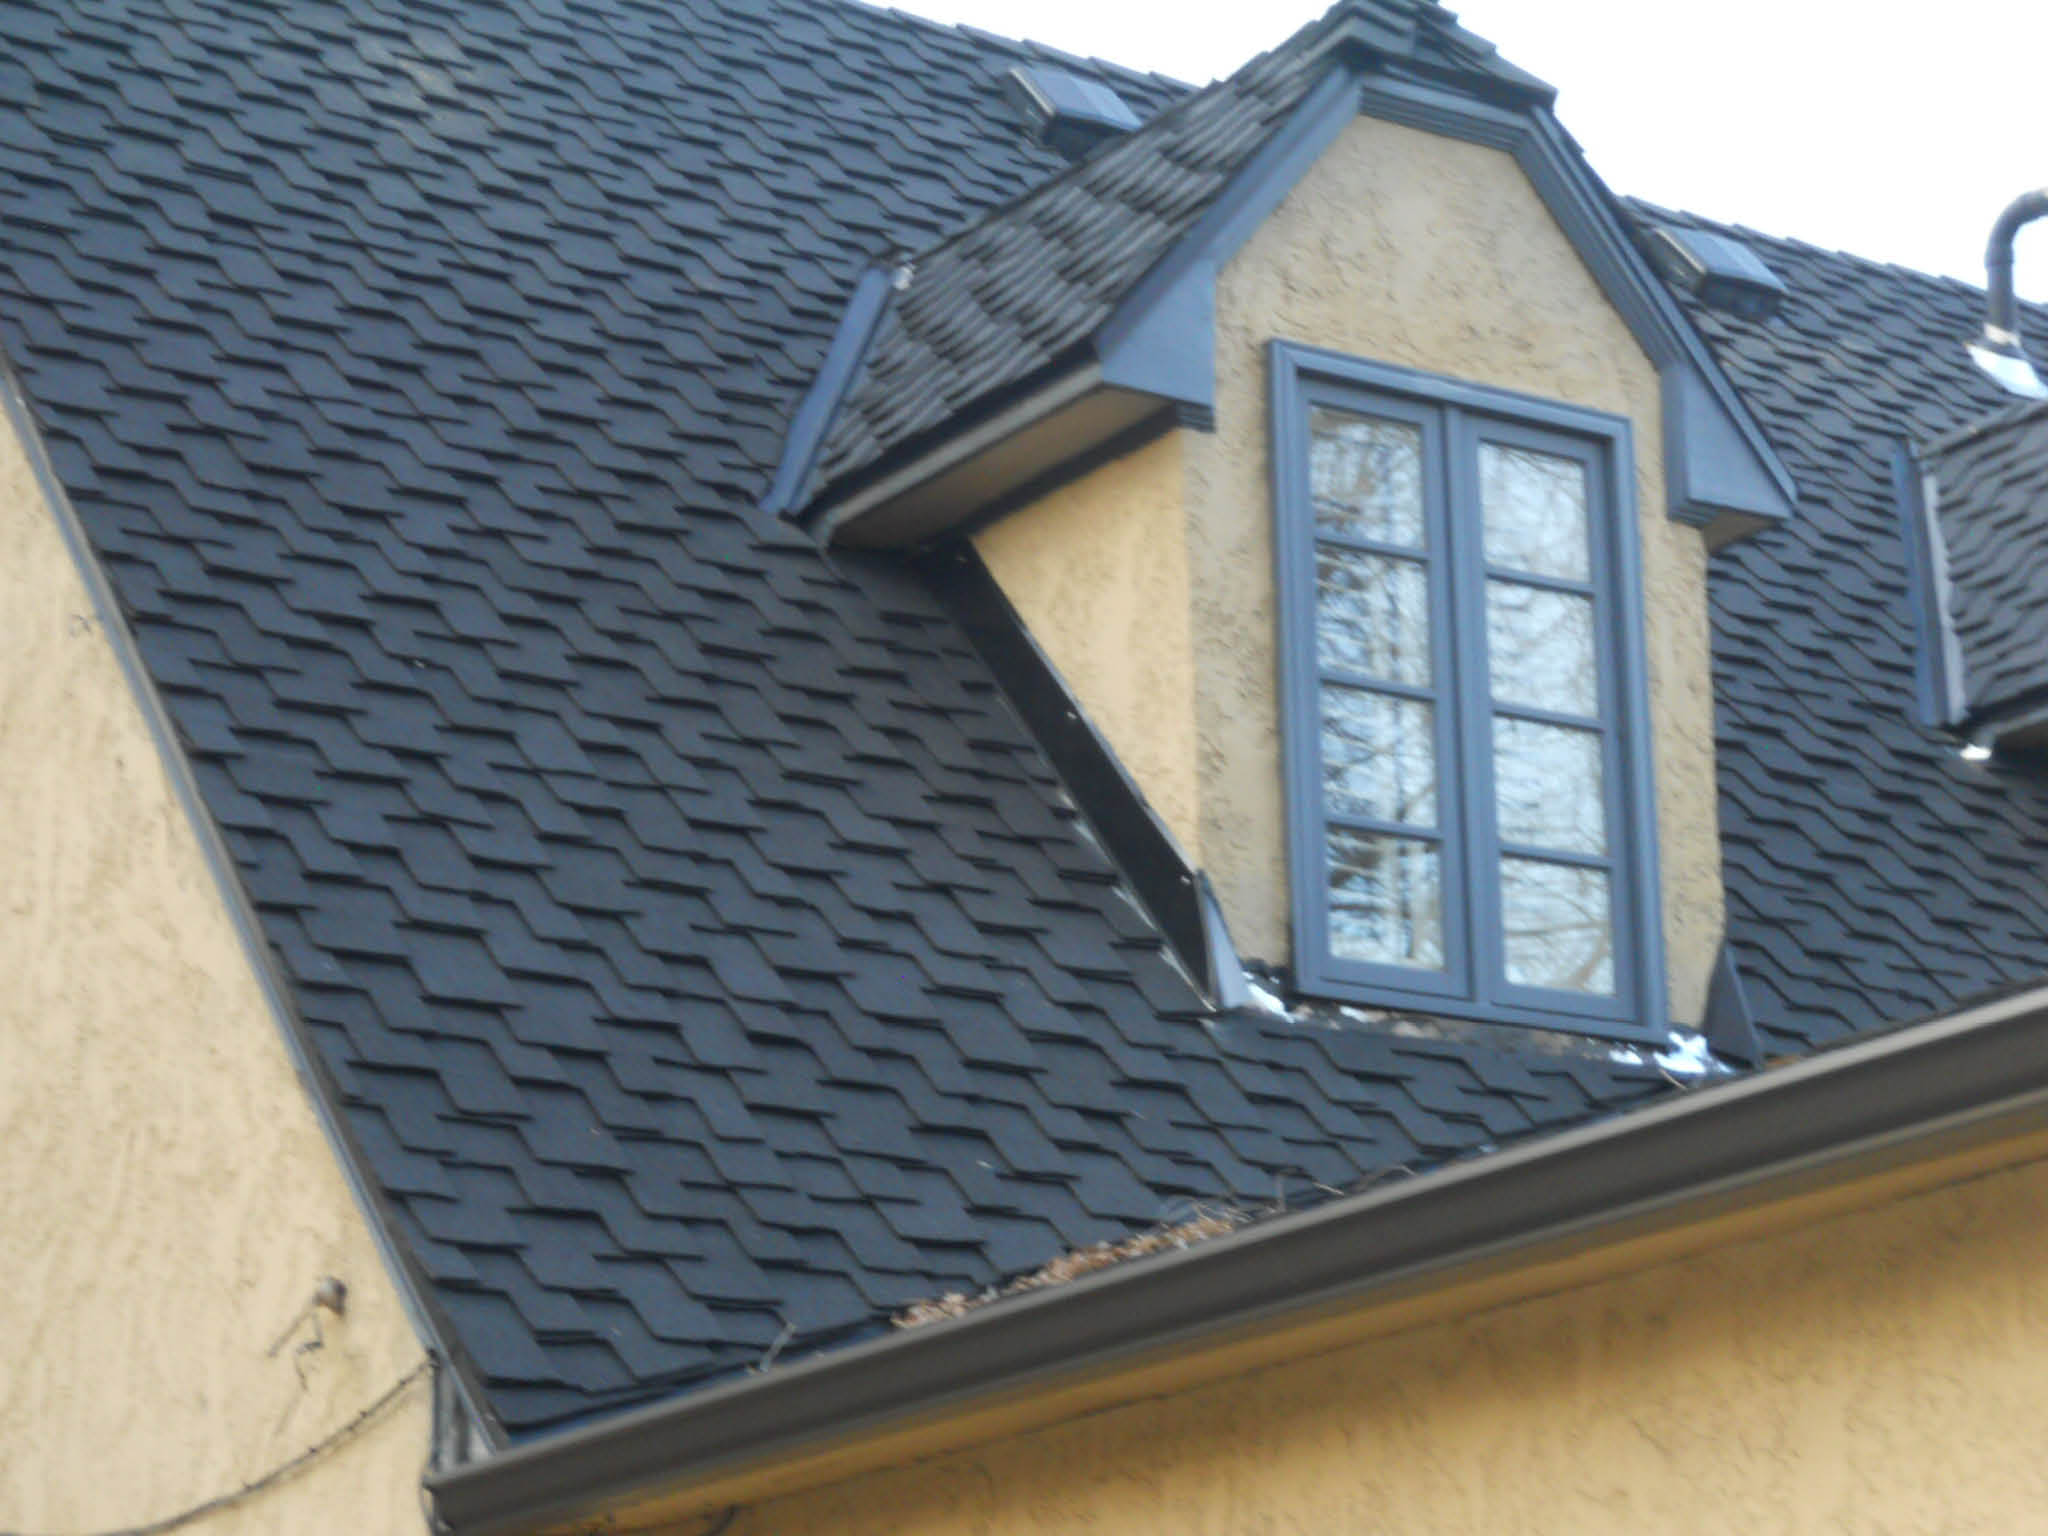 Garn-Tee Roofing coupons, Re-Roofing coupons, Roof Repair coupons.